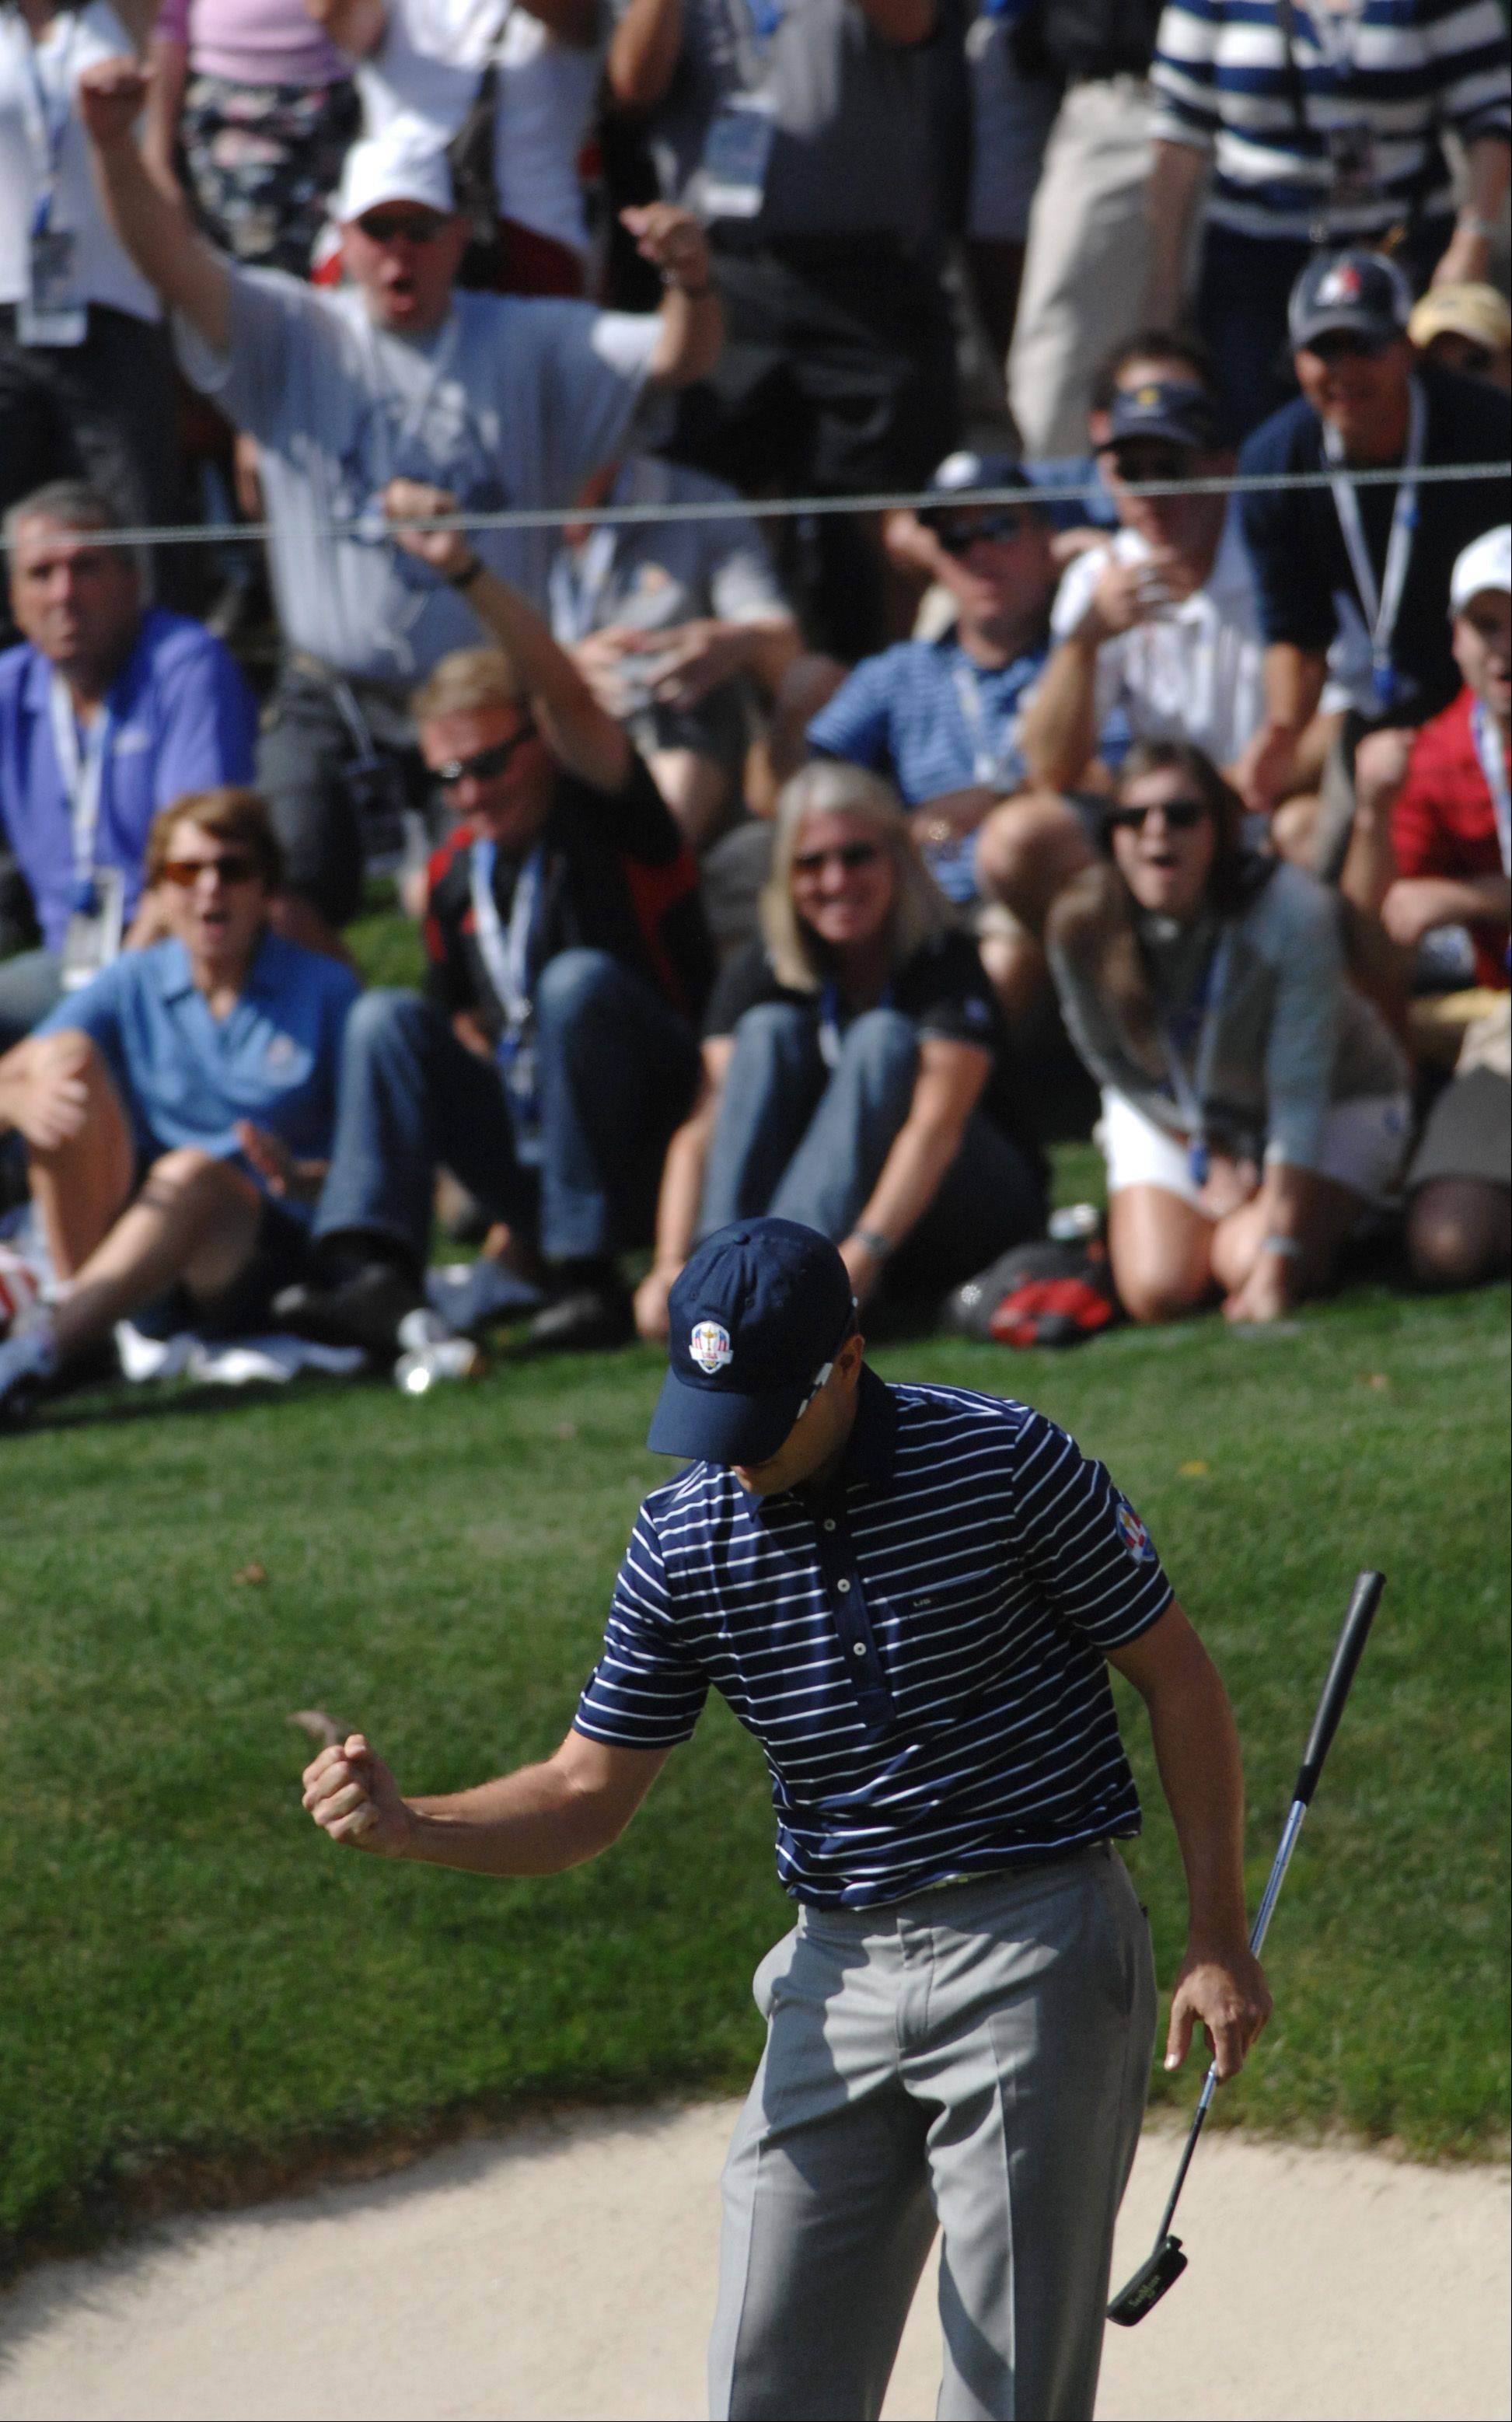 Zach Johnson reacts to a great putt on 17 that helped the US team win the hole.